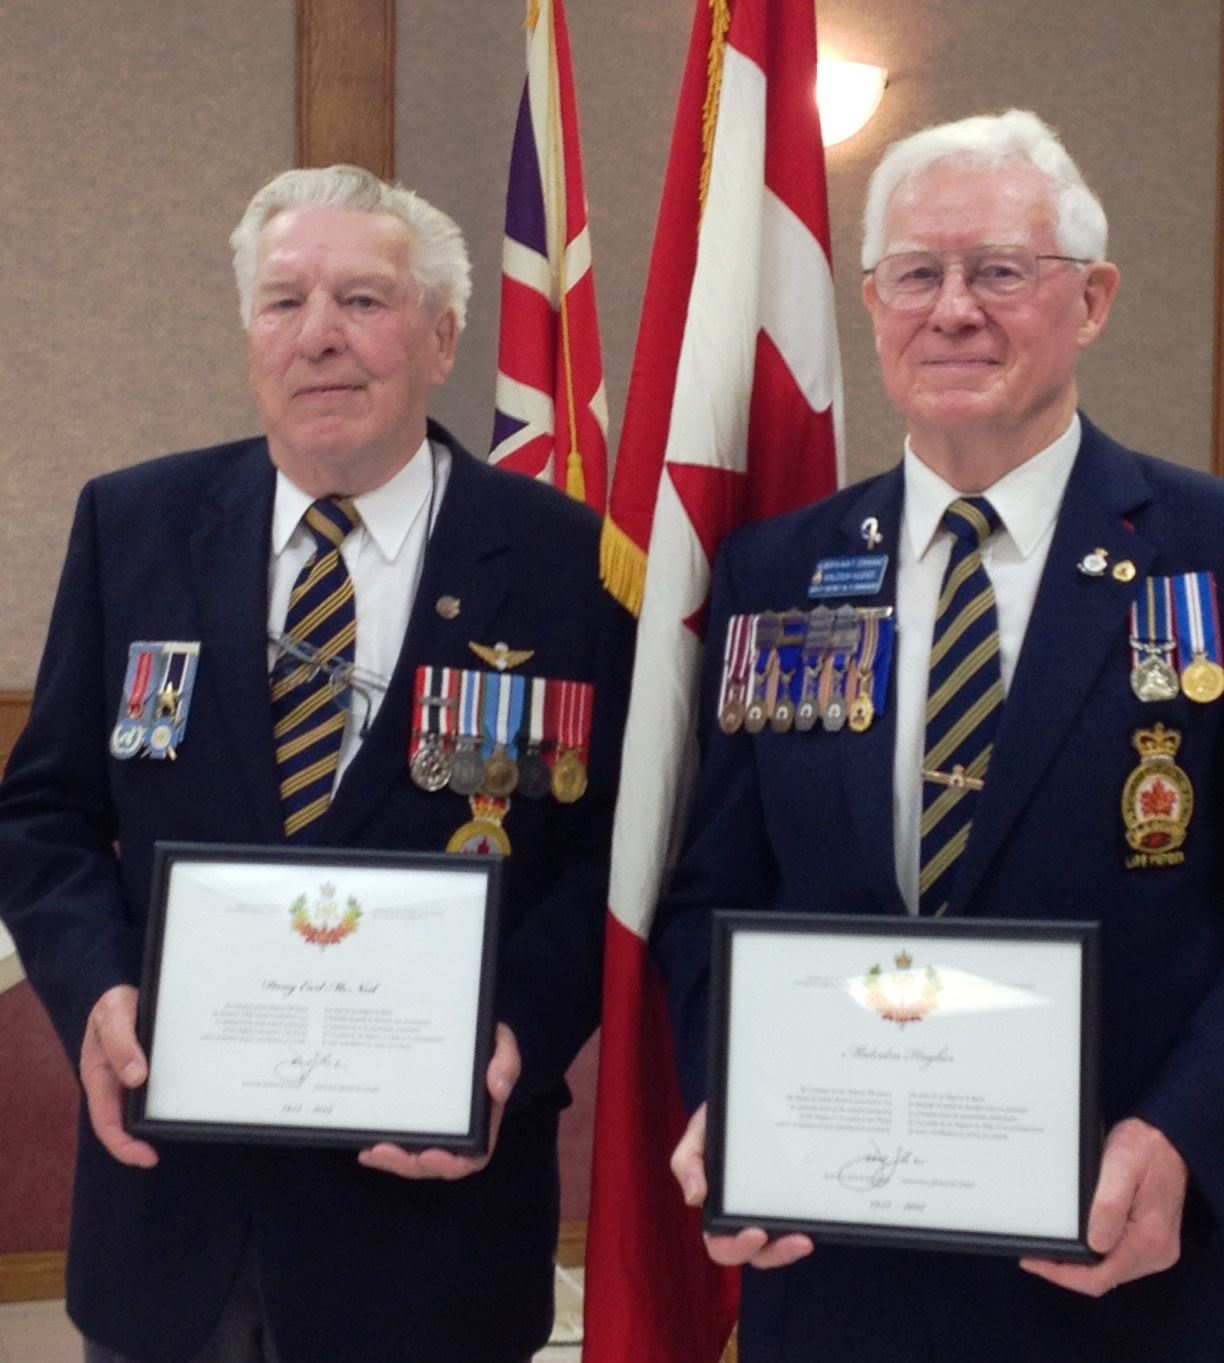 Doug McNeil and Malcolm Hughes receive Diamond Jubilee Medals